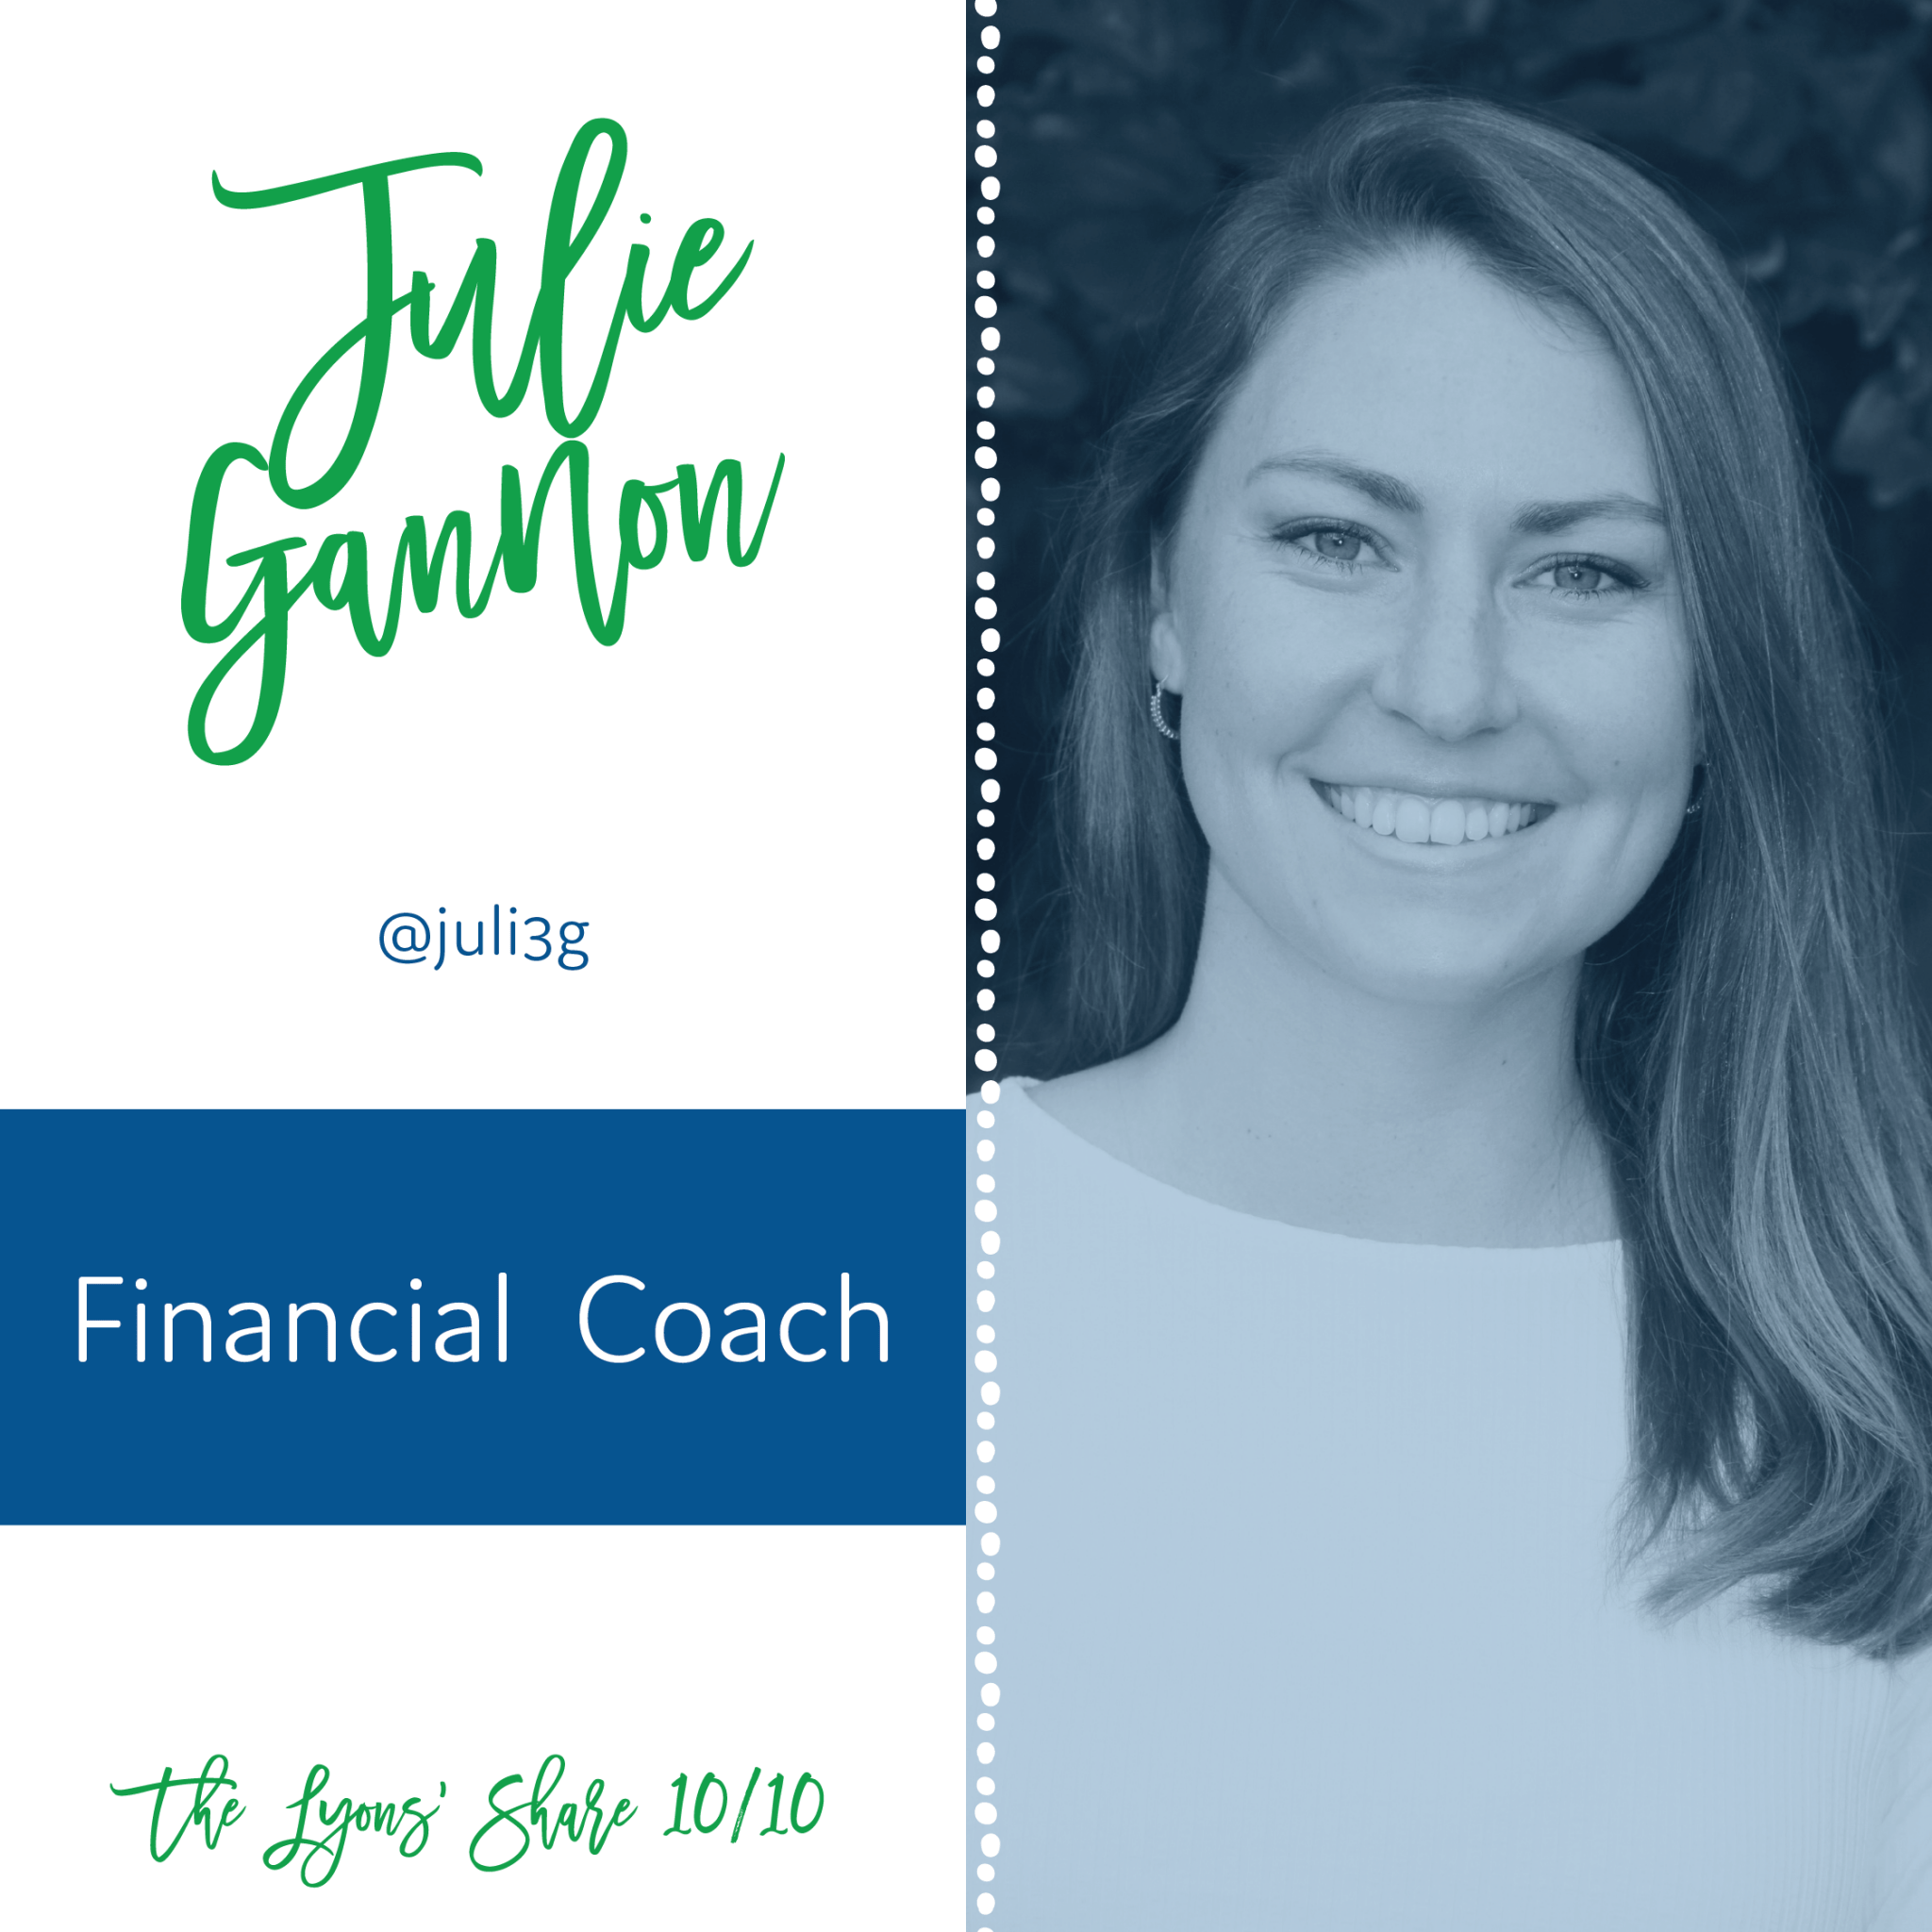 This Week's 10/10: Julie Gannon, Financial Coach!